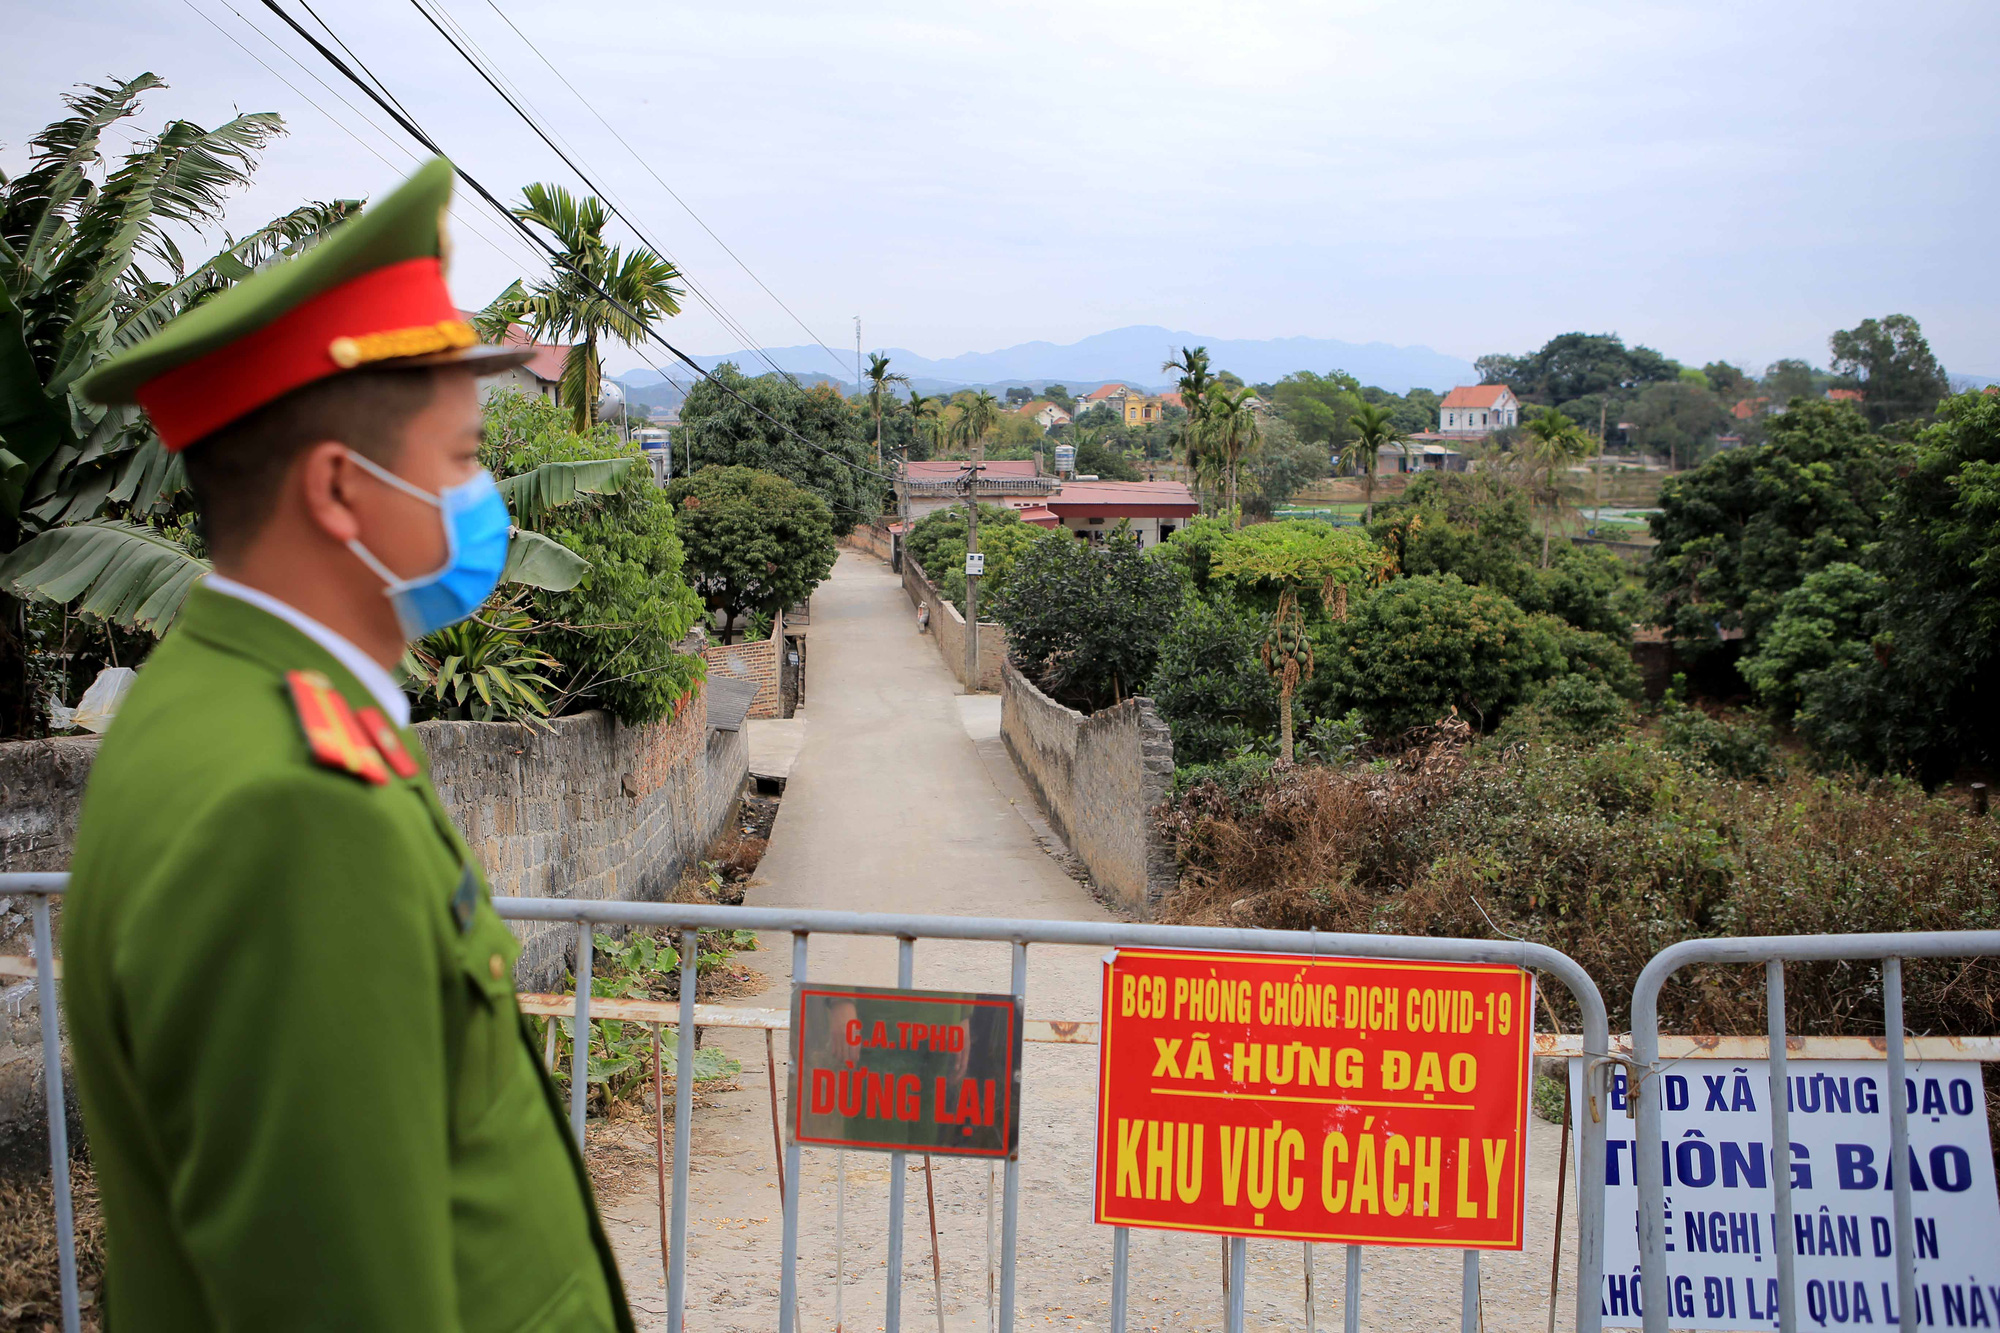 Kim Dien Village in Hung Dao Commune, Chi Linh City, Hai Duong Province is fenced off on January 28, 2021. Photo: Anh Cuong / Tuoi Tre